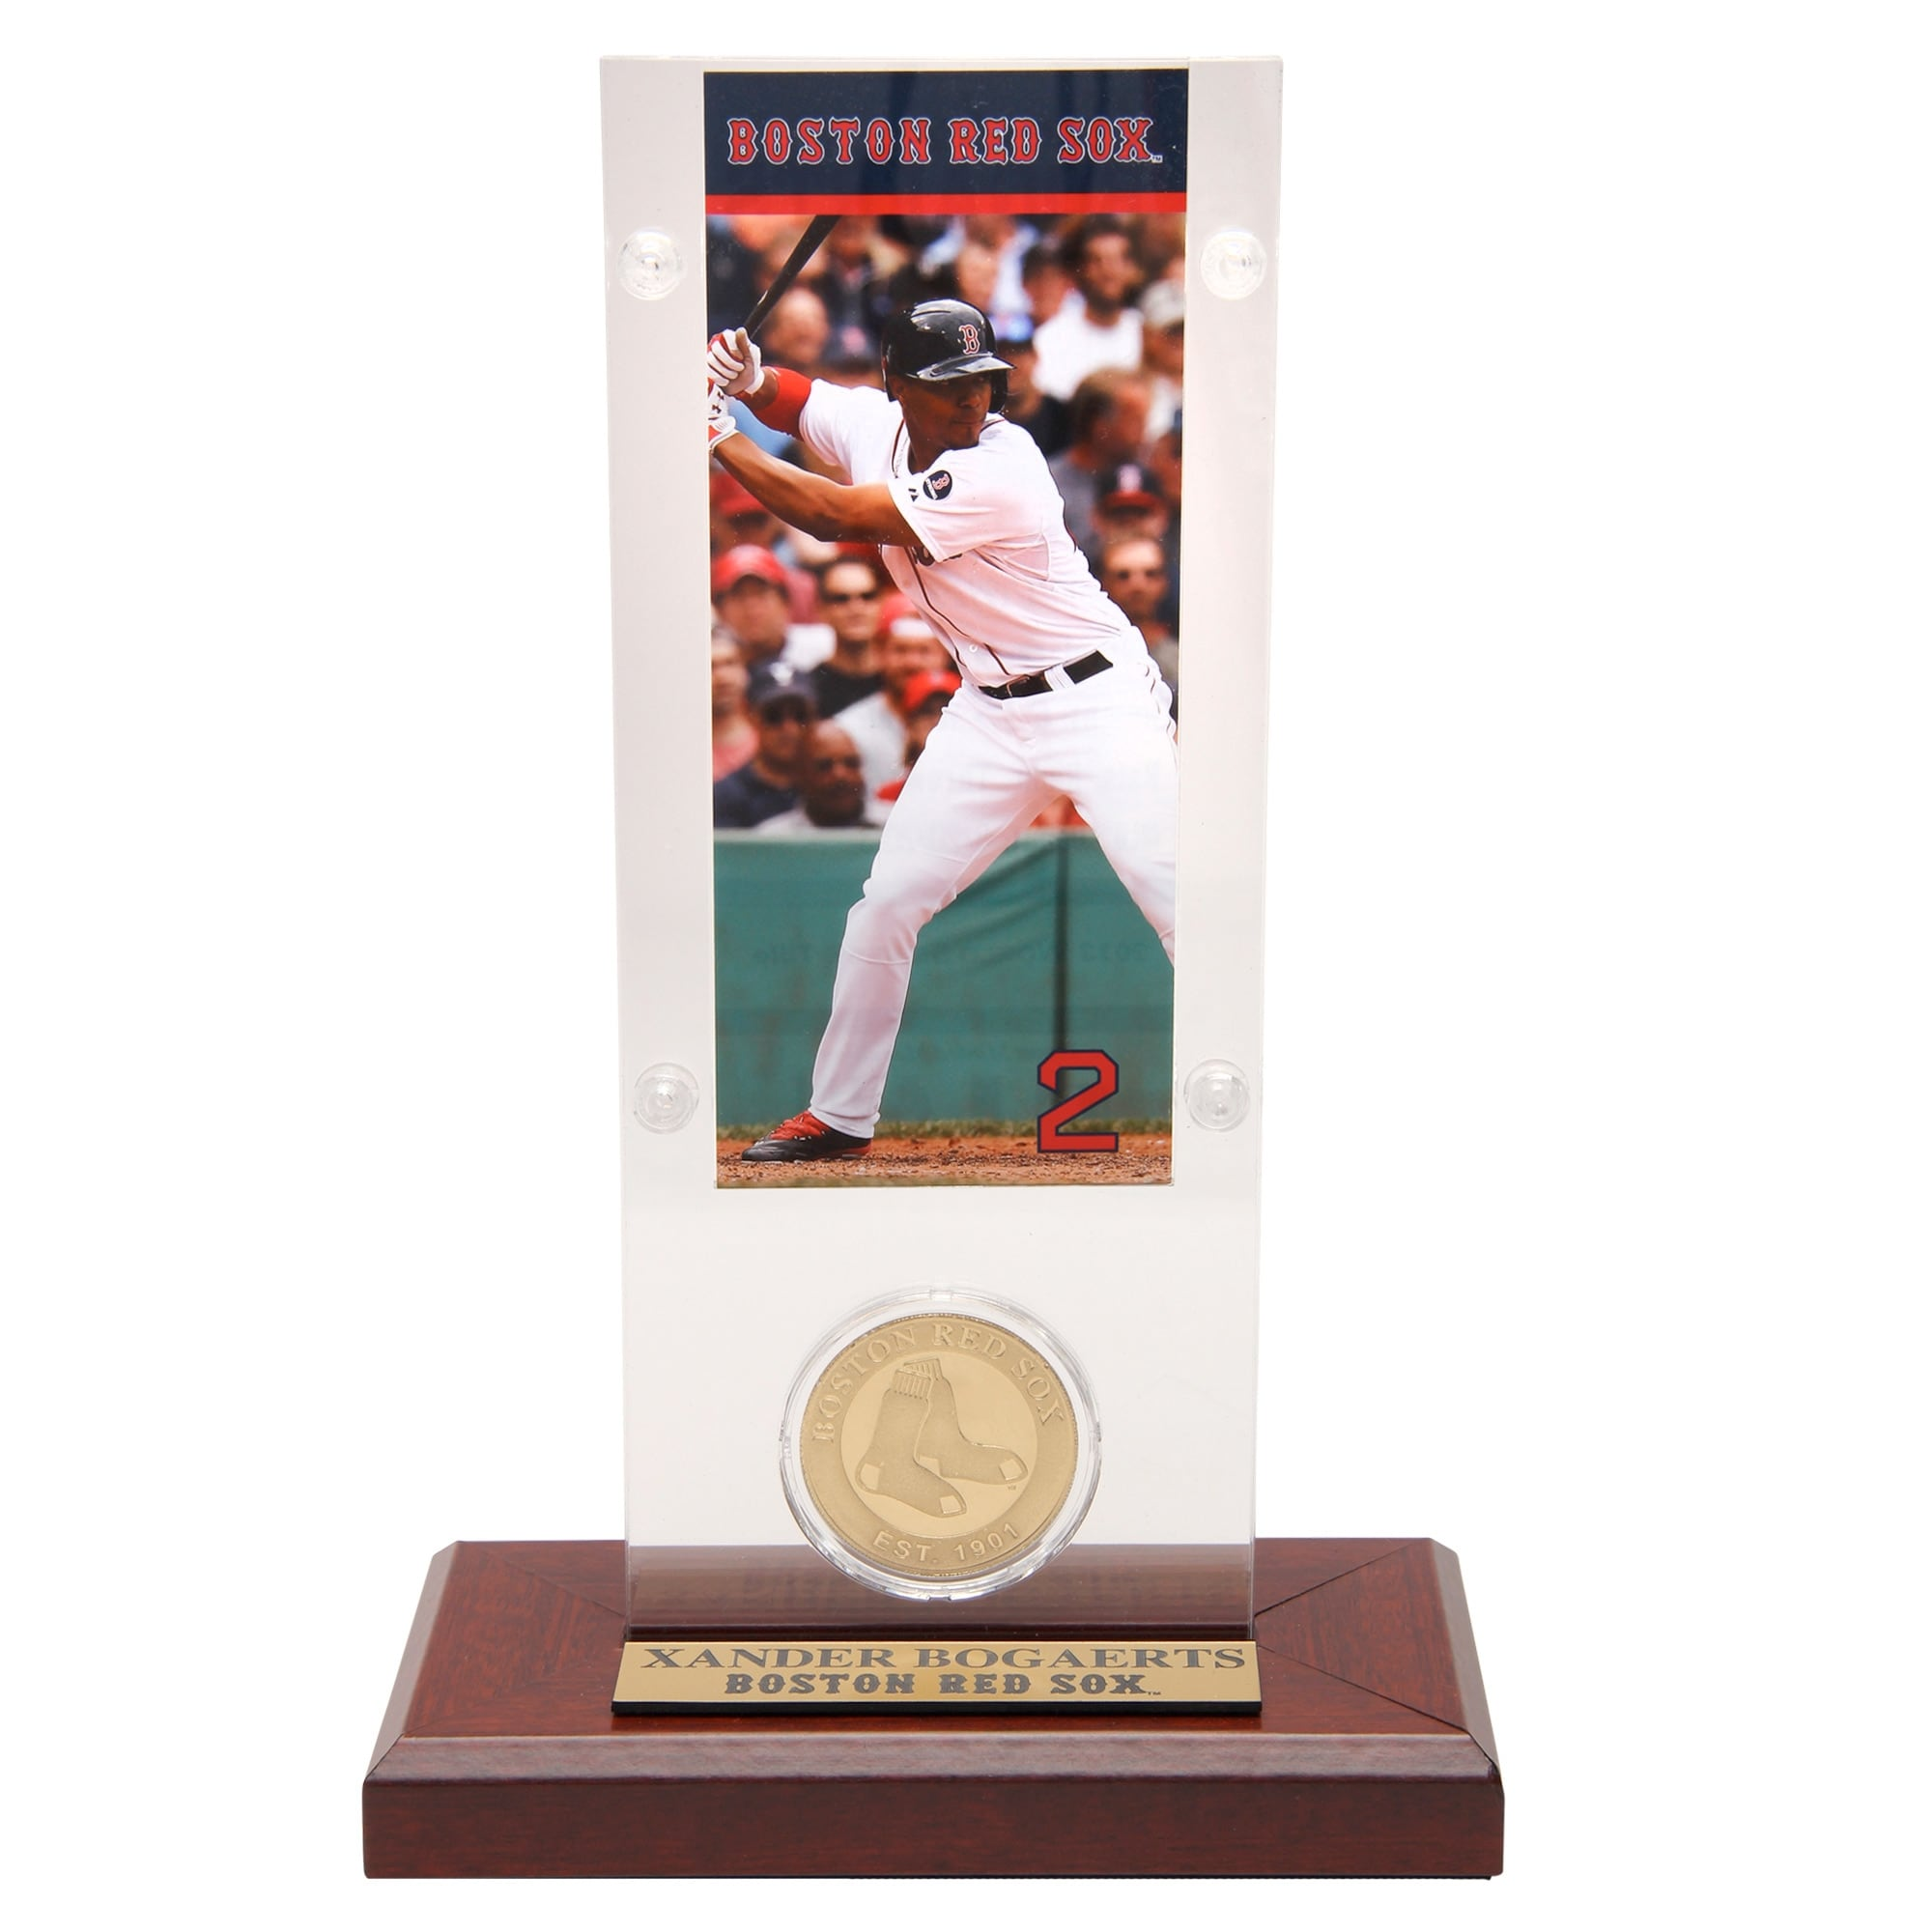 Xander Bogaerts Boston Red Sox Highland Mint Acrylic Player Ticket with Minted Coin